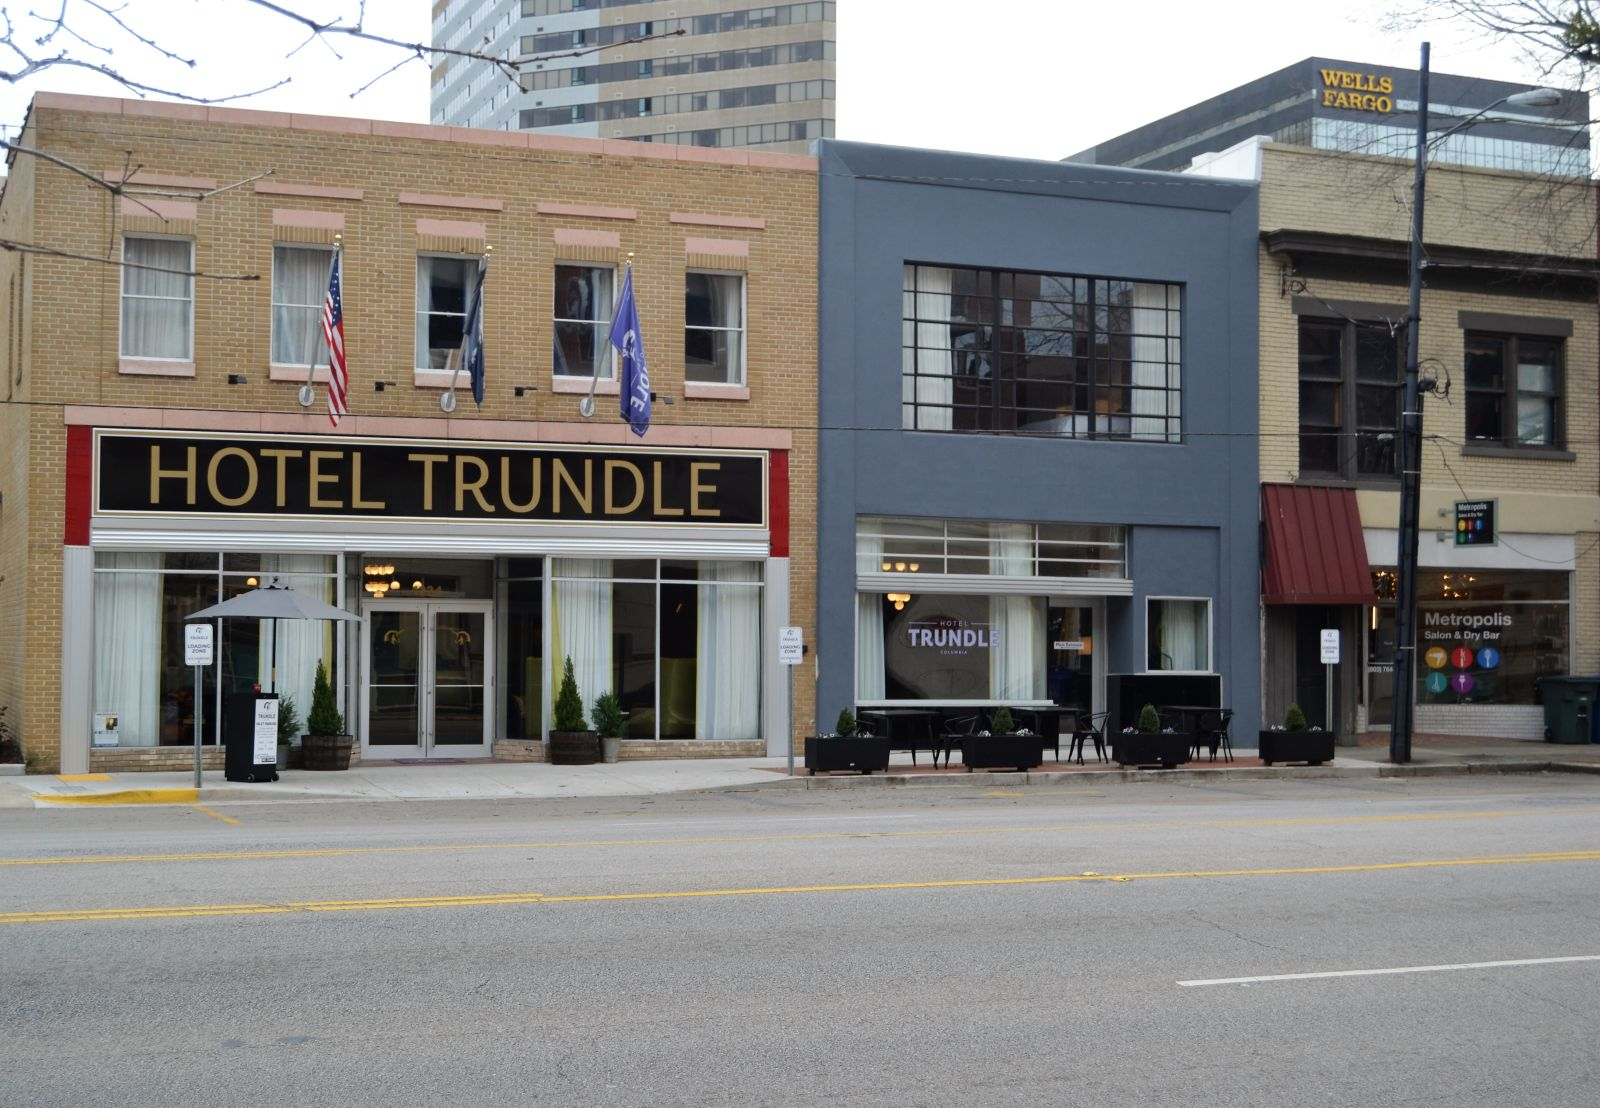 Hotel Trundle was once the site of three empty buildings at the corner of Taylor and Sumter streets before being renovated into the Main Street district's first boutique hotel in a project that took advantage of historic tax credits. (Photo/Melinda Waldrop)